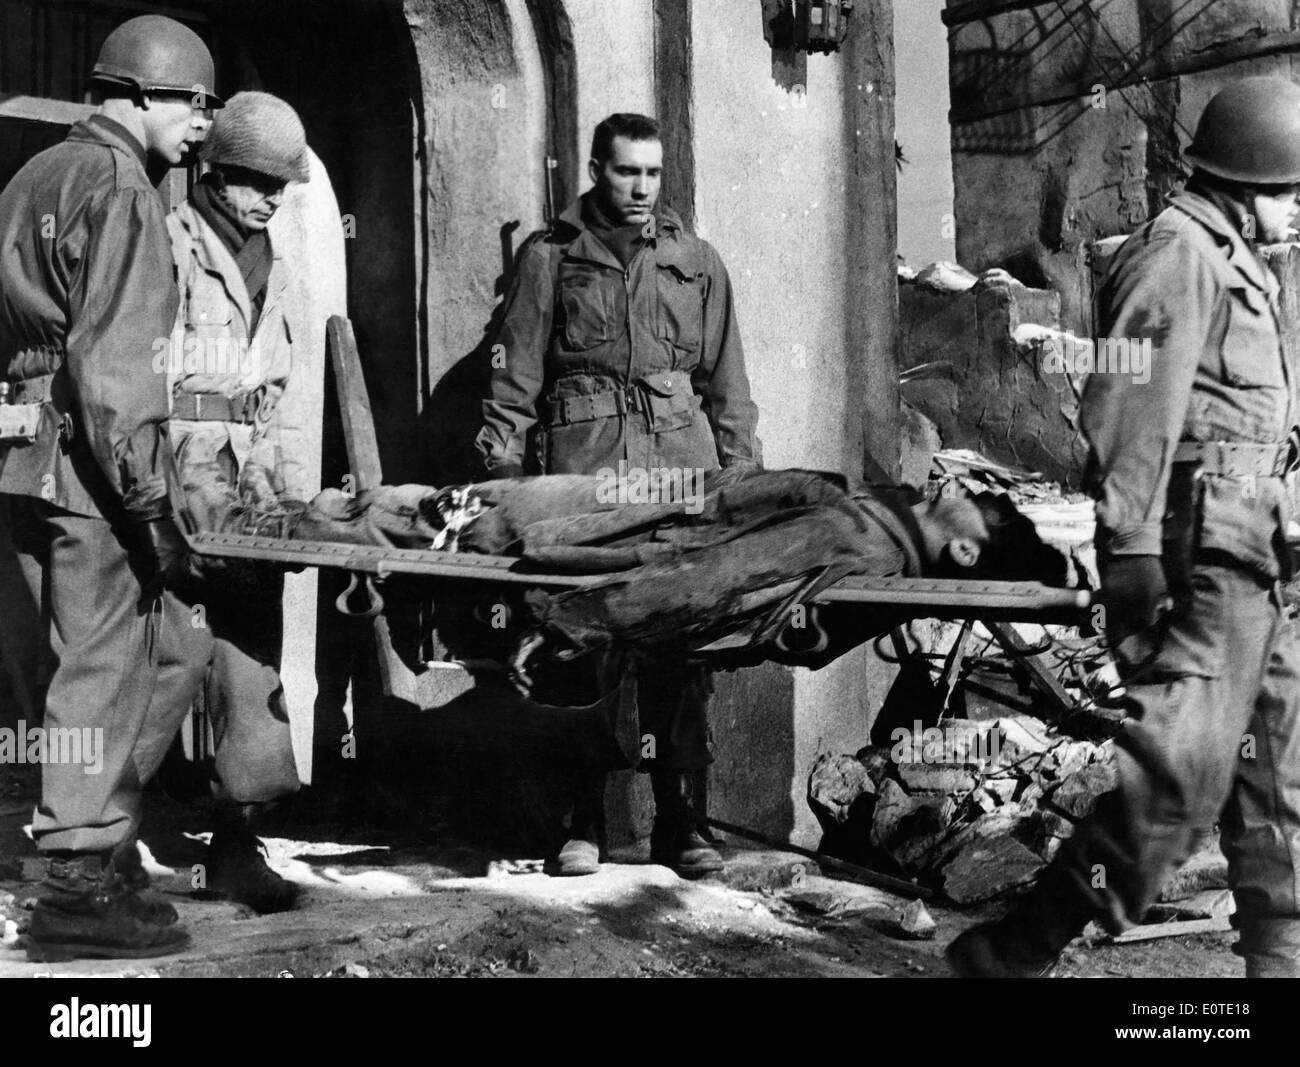 Lee Marvin, (L), on-set of the Film, 'Attack', 1956 - Stock Image